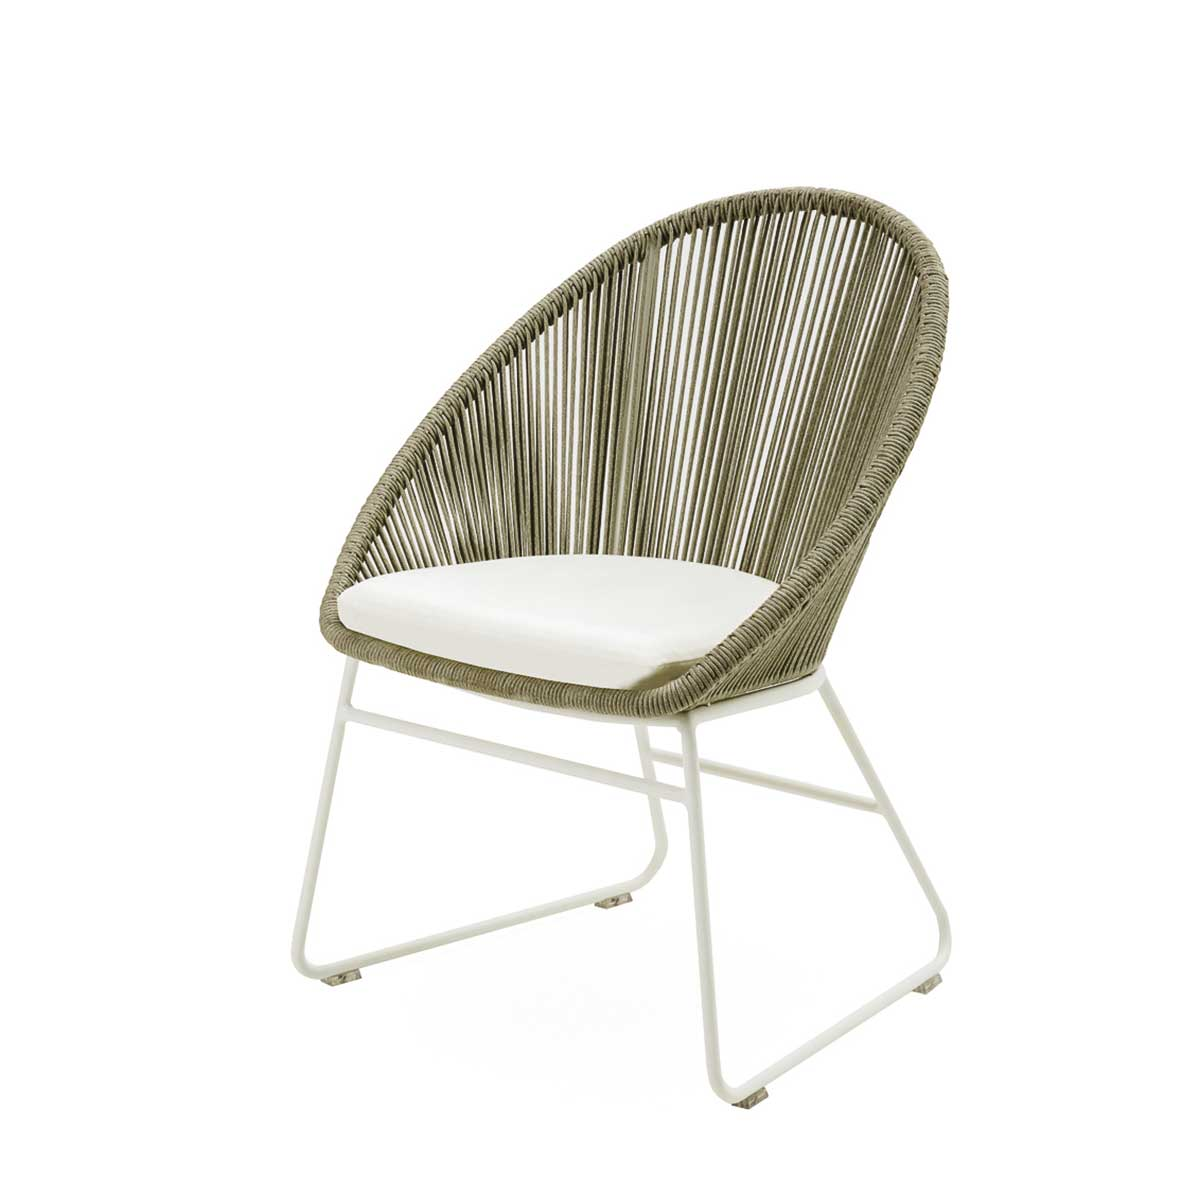 Dining armchair Infinity Braid